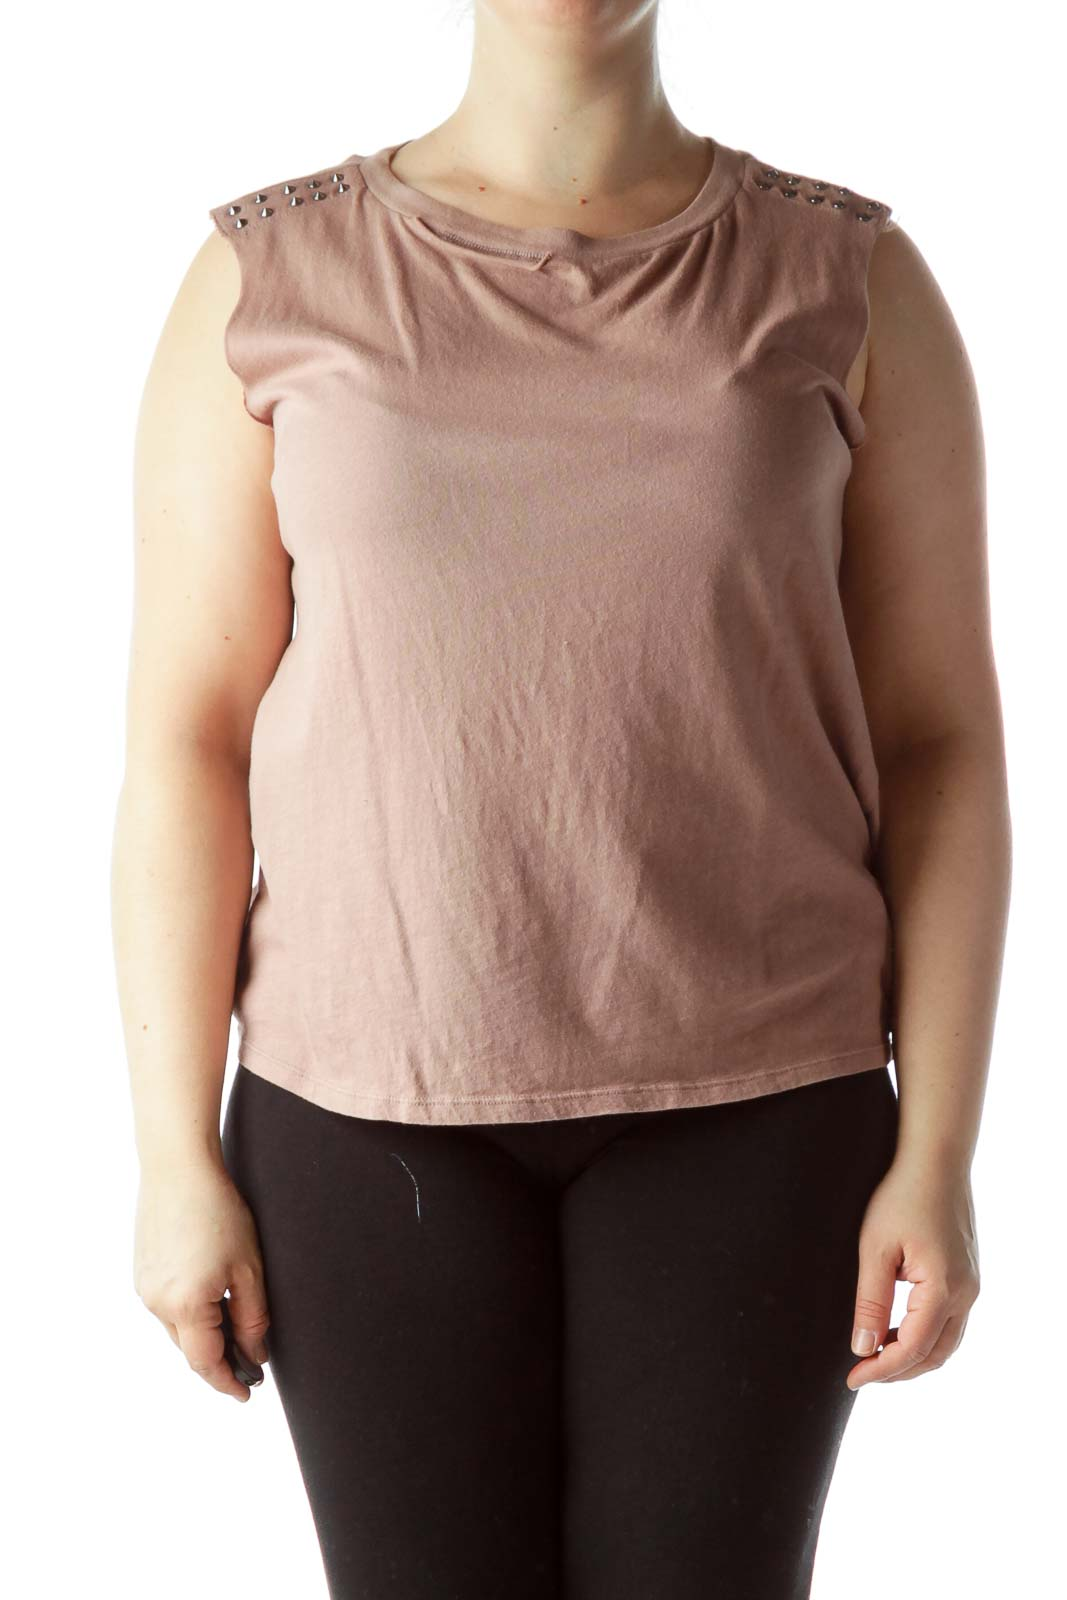 Dusty Rose Studded and Distressed Top Front